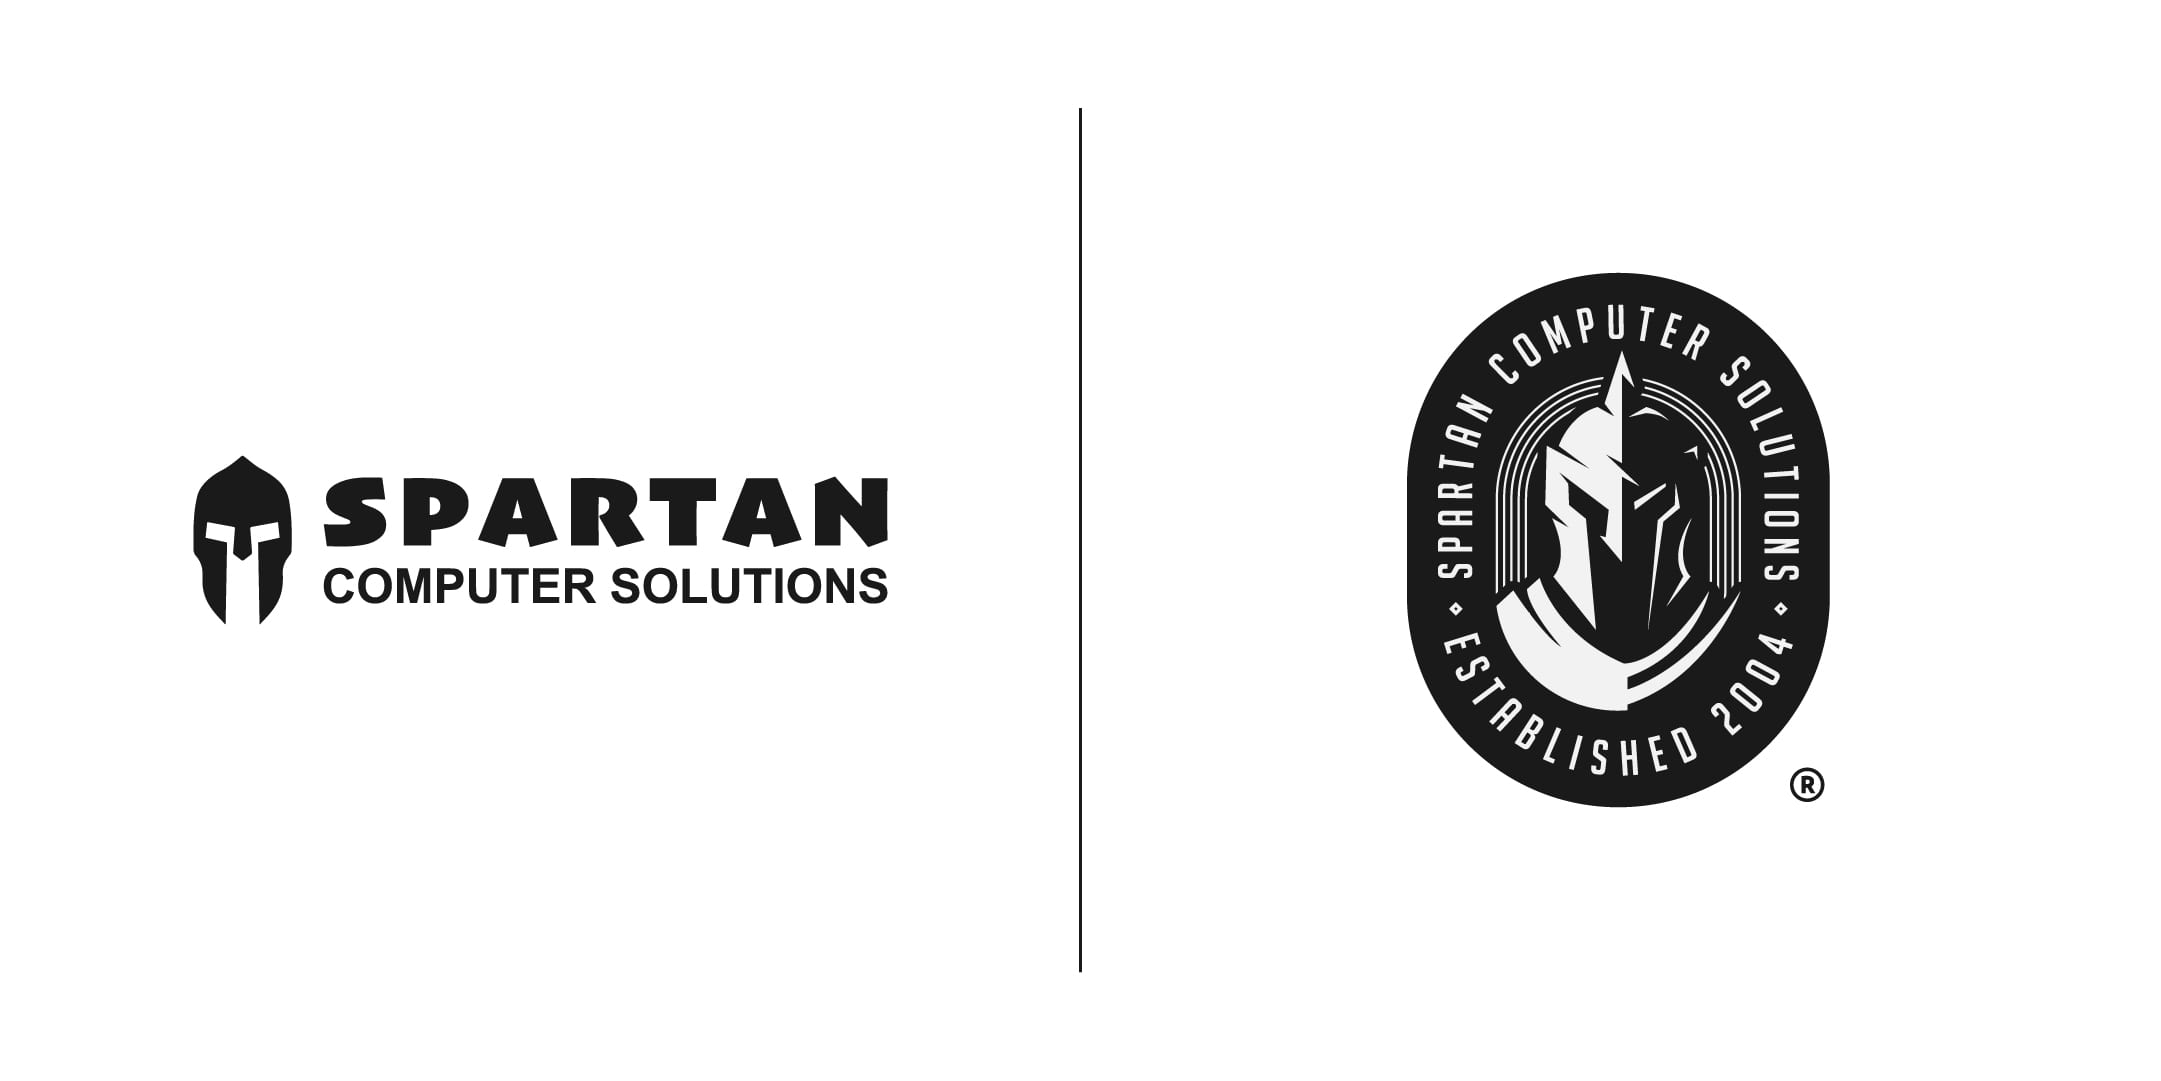 Spartan Computer Solutions Before and After Logo